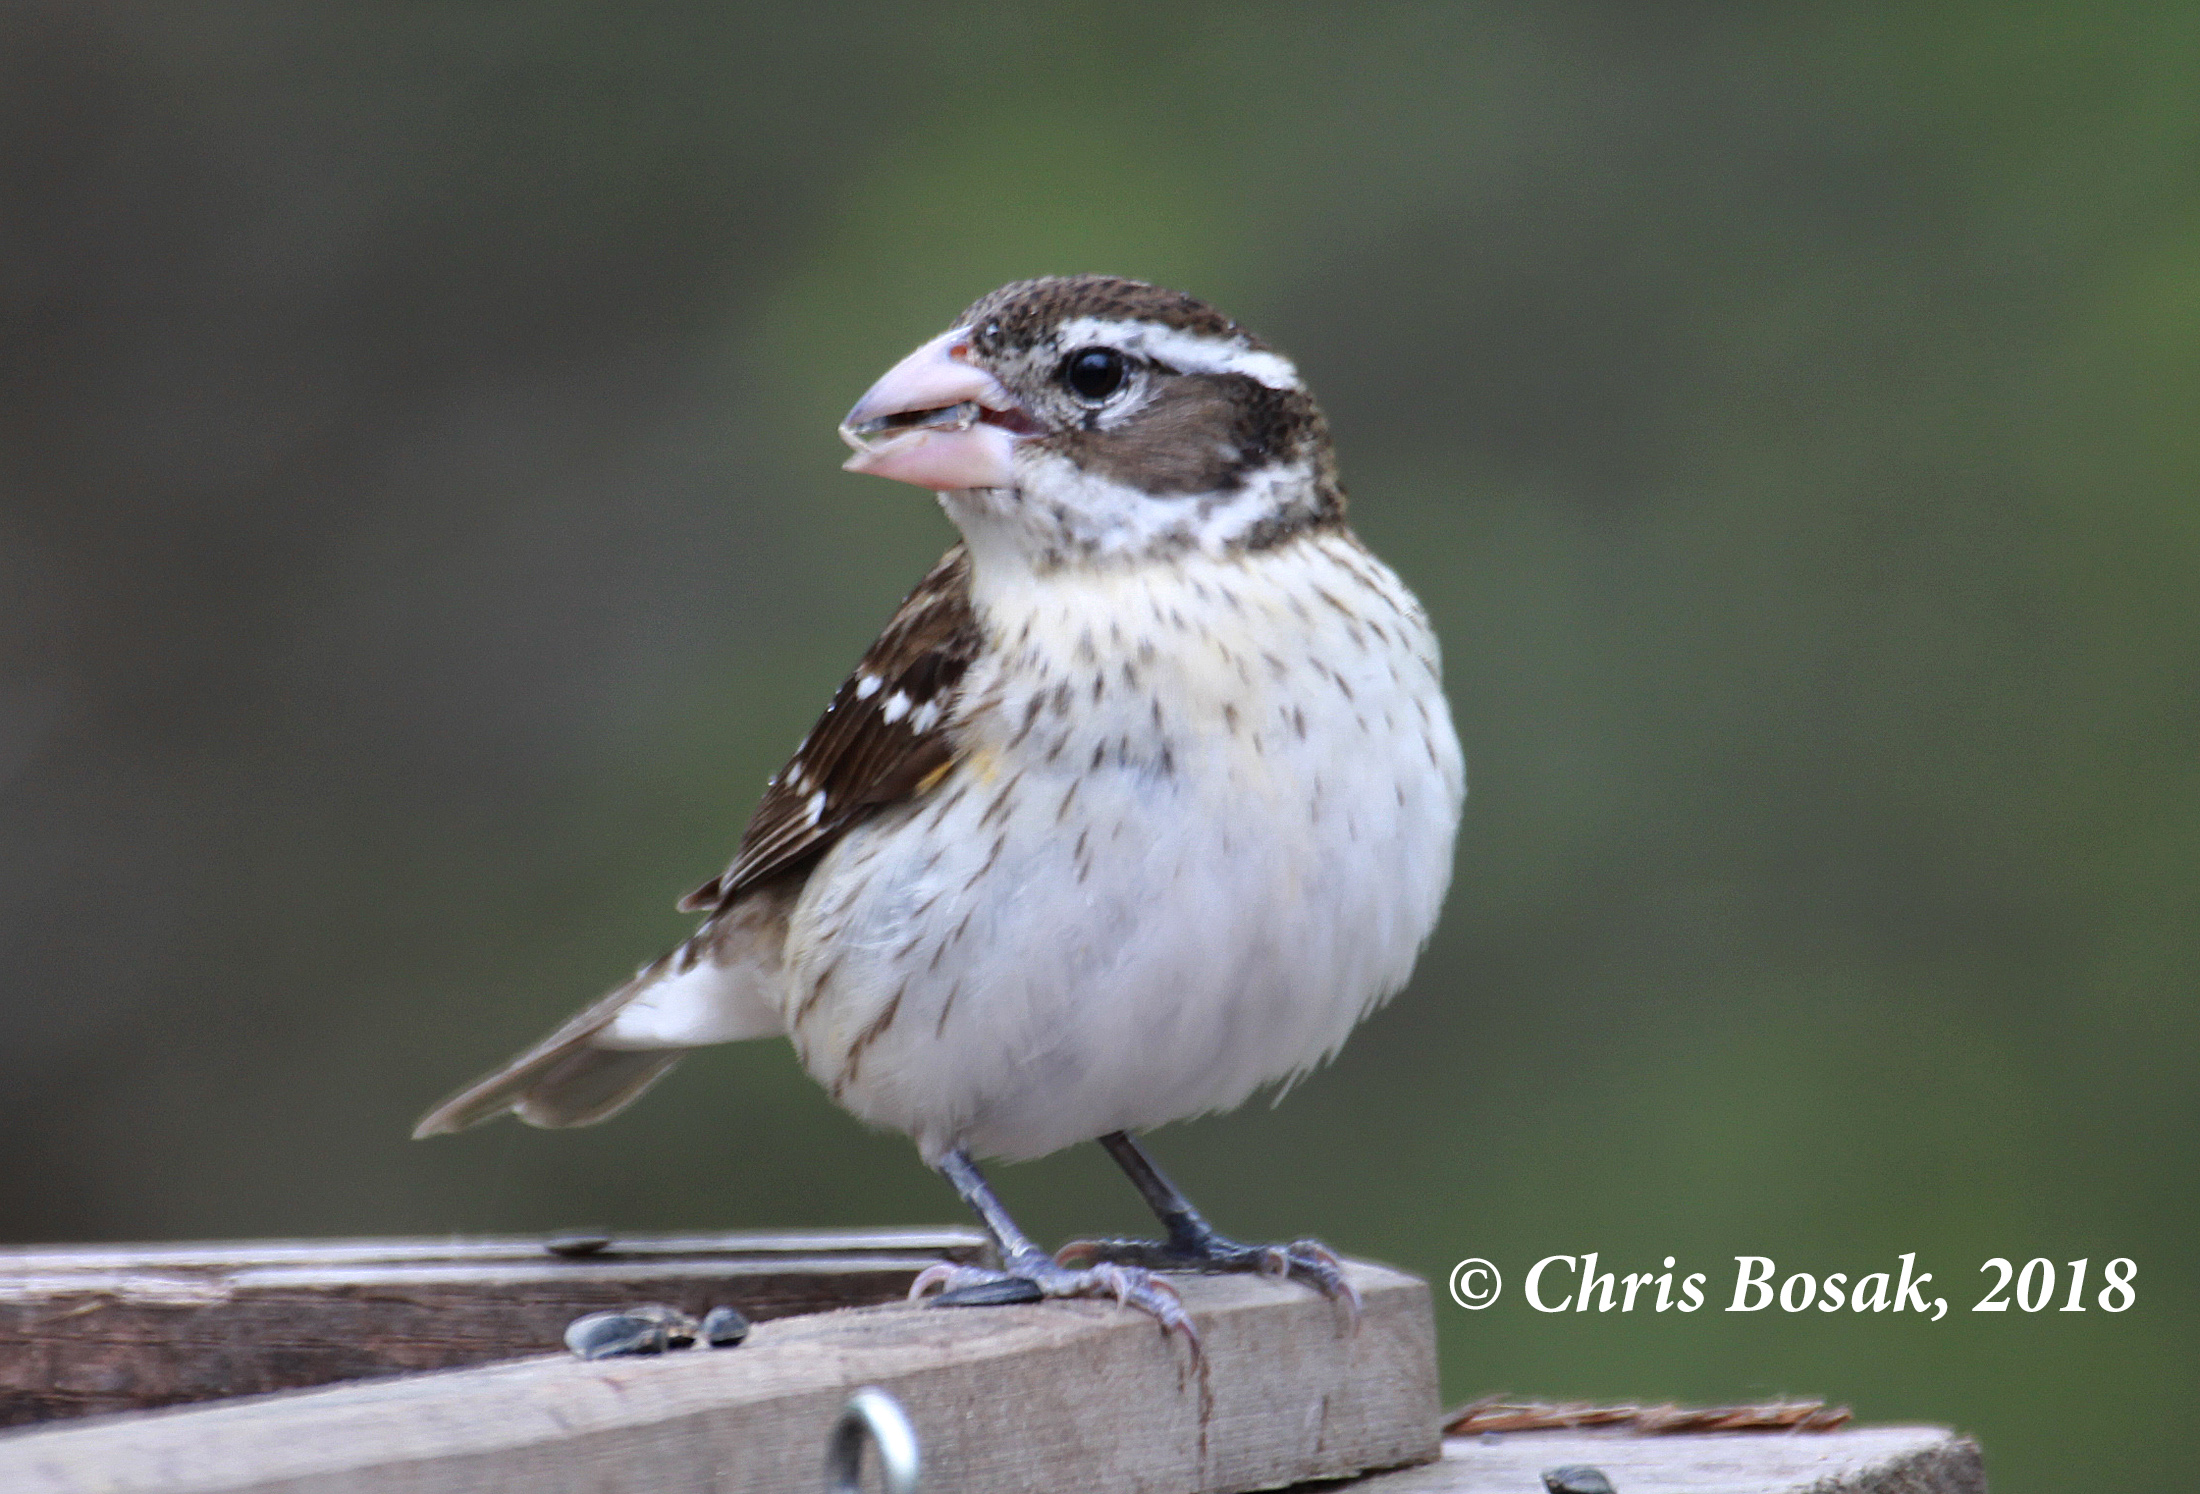 Photo by Chris Bosak  A female rose-breasted grosbeak visits a feeder in Danbury, Conn., during the spring of 2018.